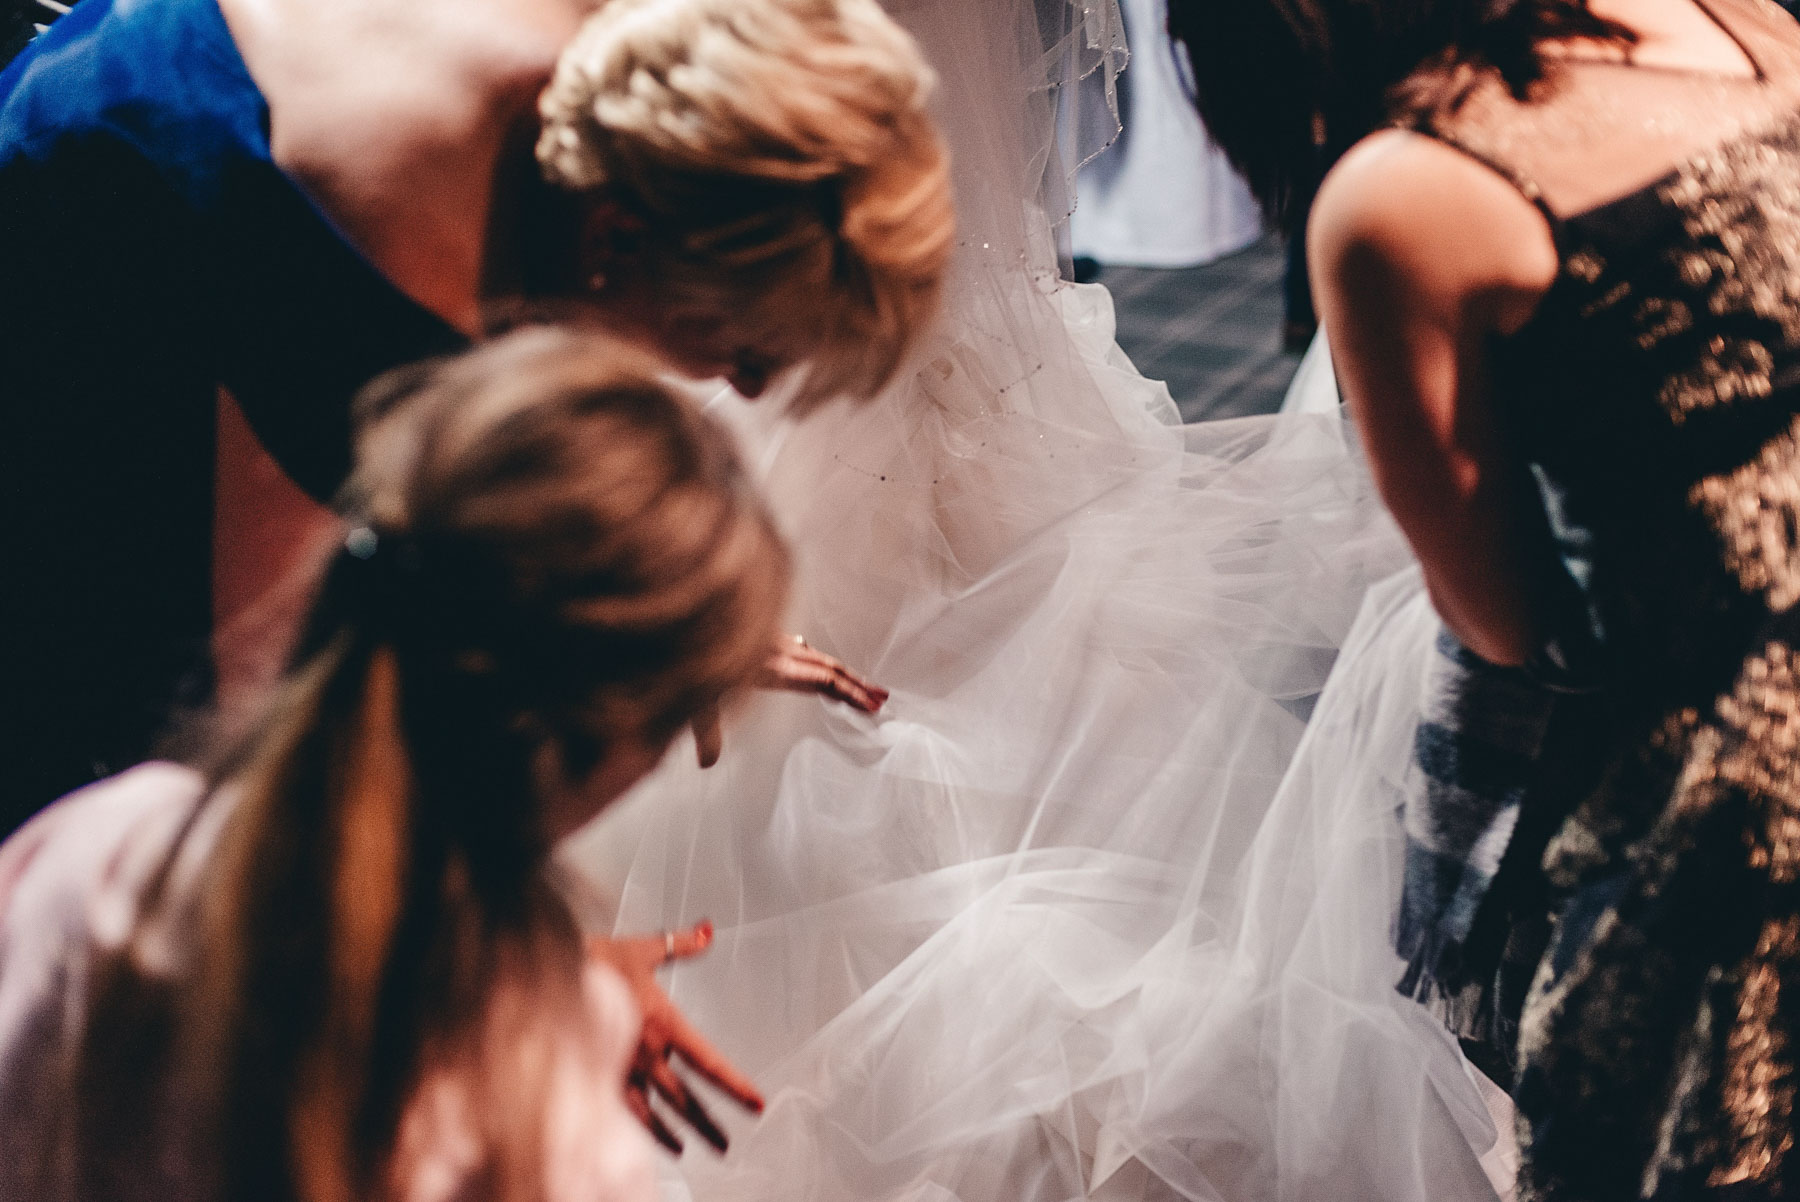 Guests help bride with her dress